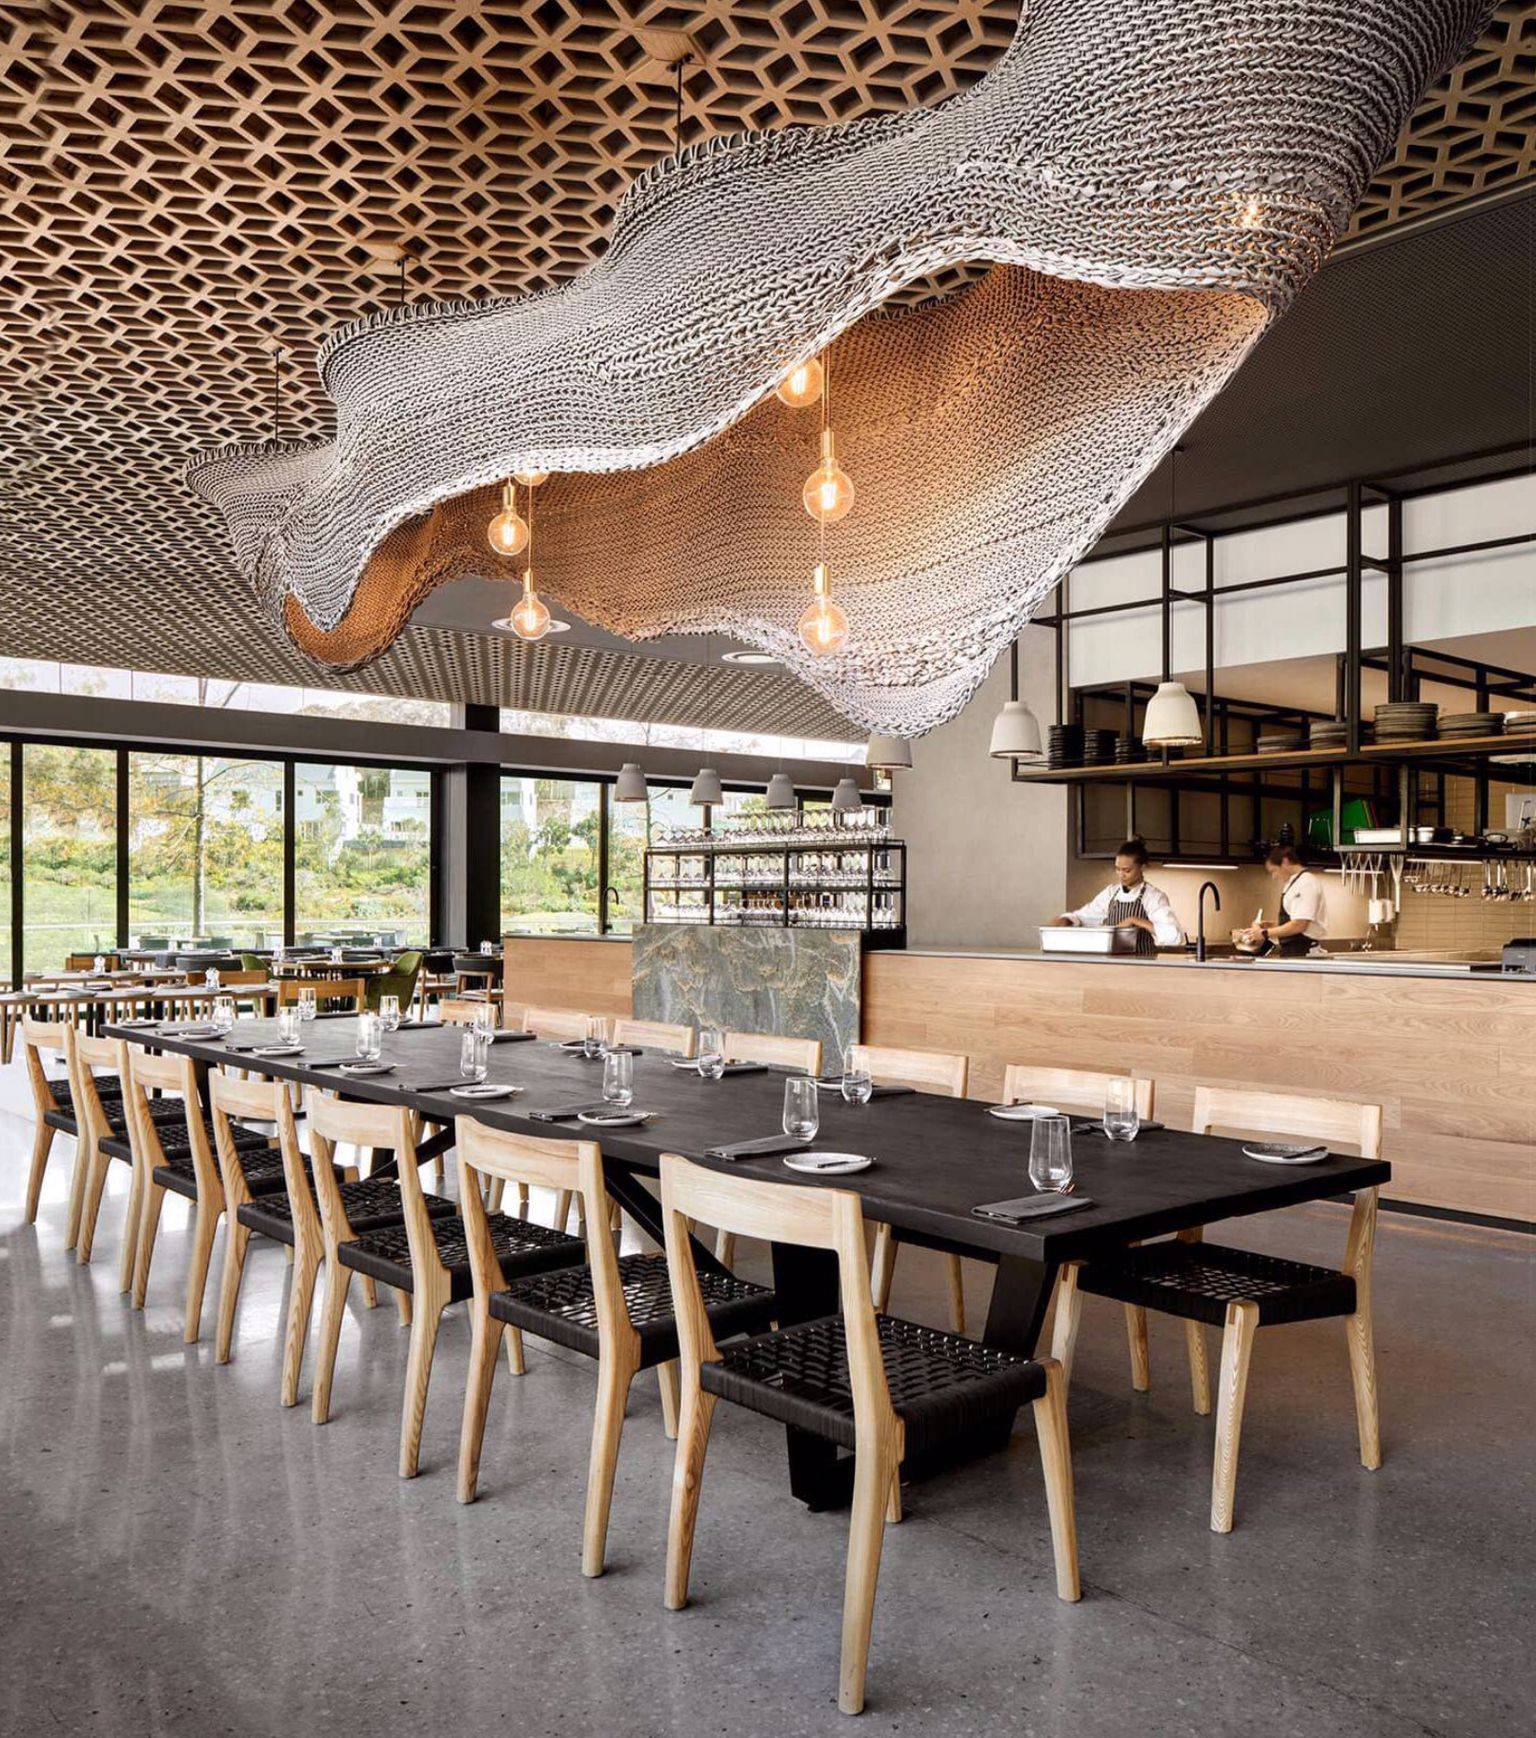 This Whole Thing And The Woven Fixture Leaves Me Speechless Affordable Interior Design Restaurant Design Restaurant